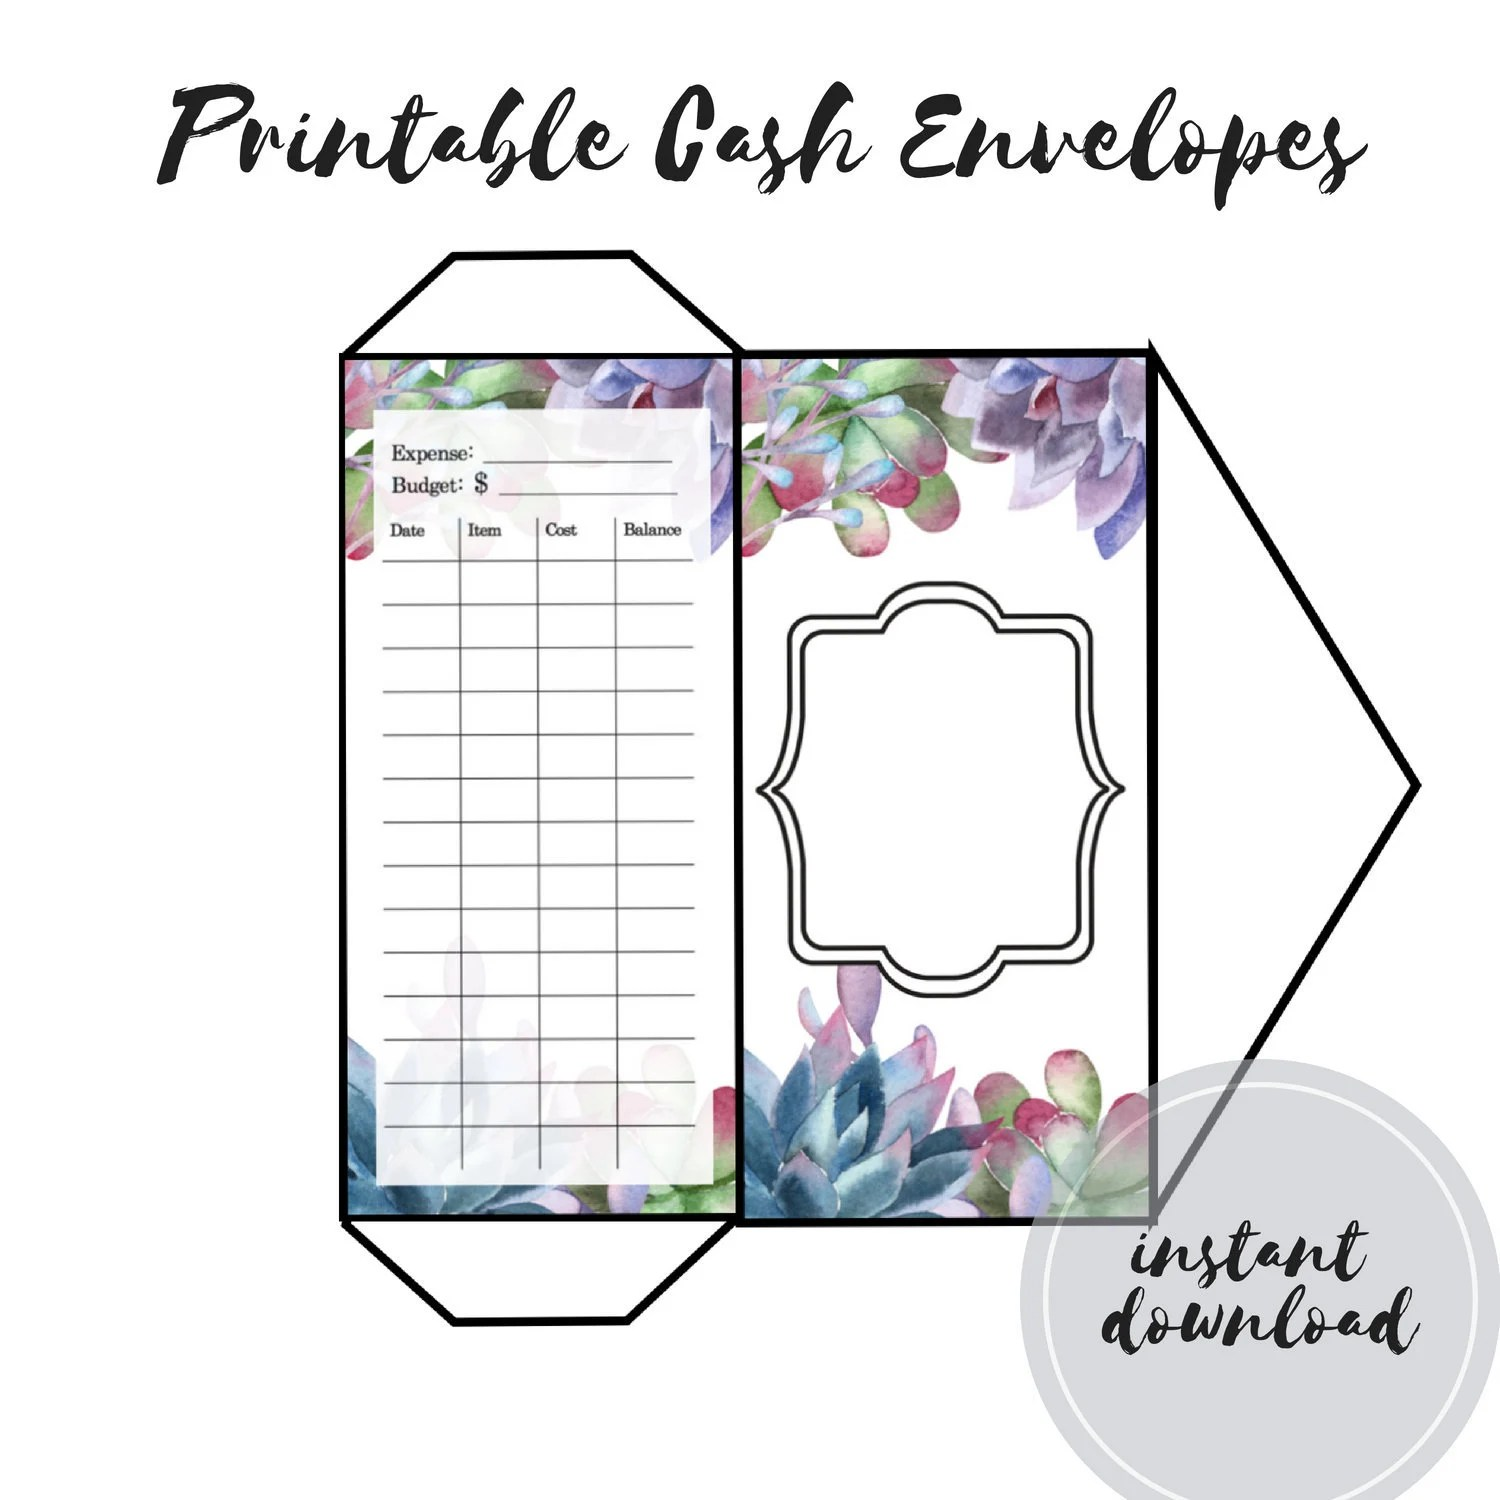 Printable Cash Envelopes Template Cash Wallet Budget